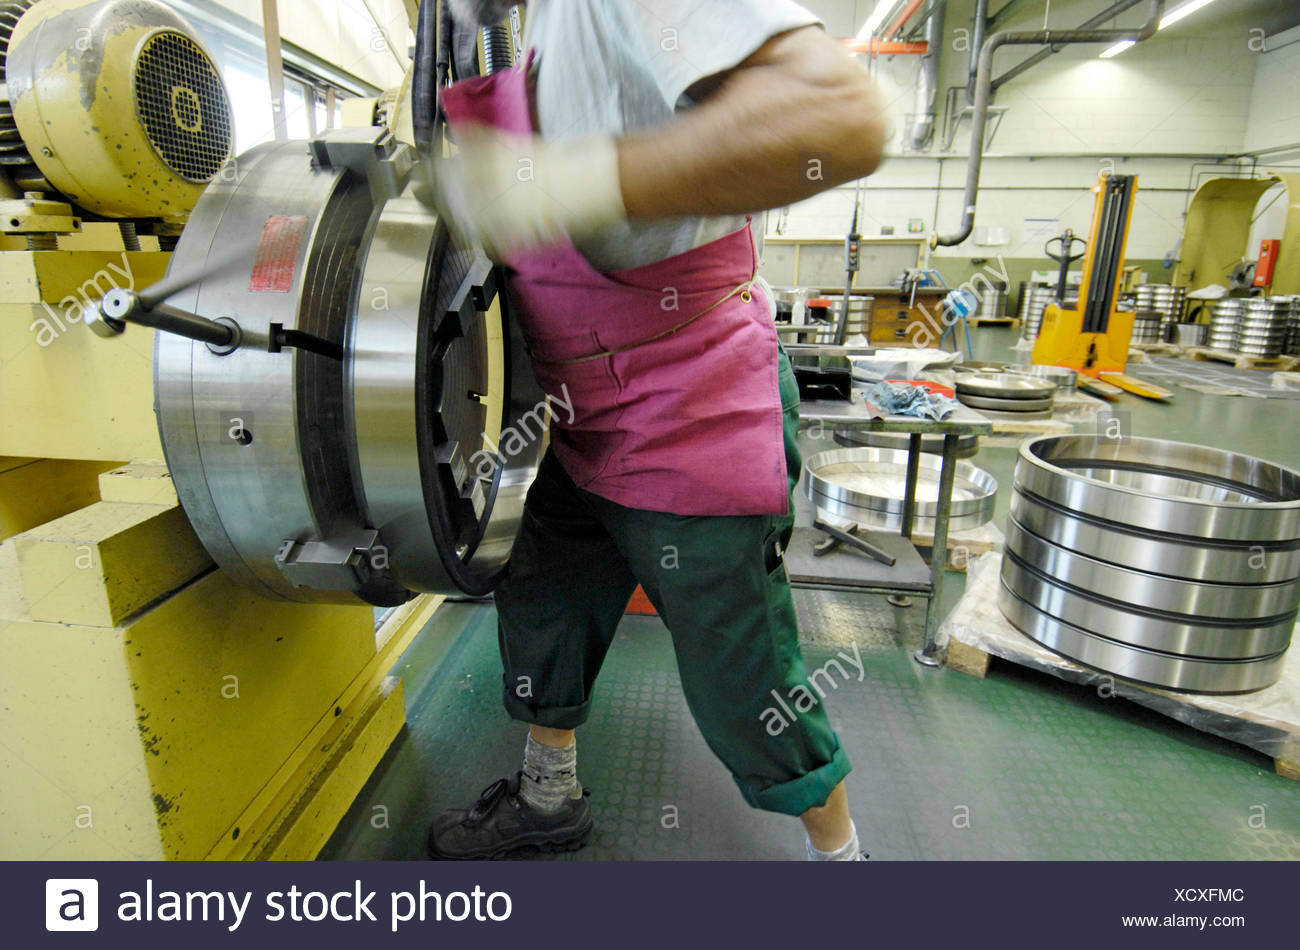 Roller bearing production, finishing of the outer rings, polishing of the bearing surfaces, SKF GmbH, Schweinfurt, Bavaria - Stock Image